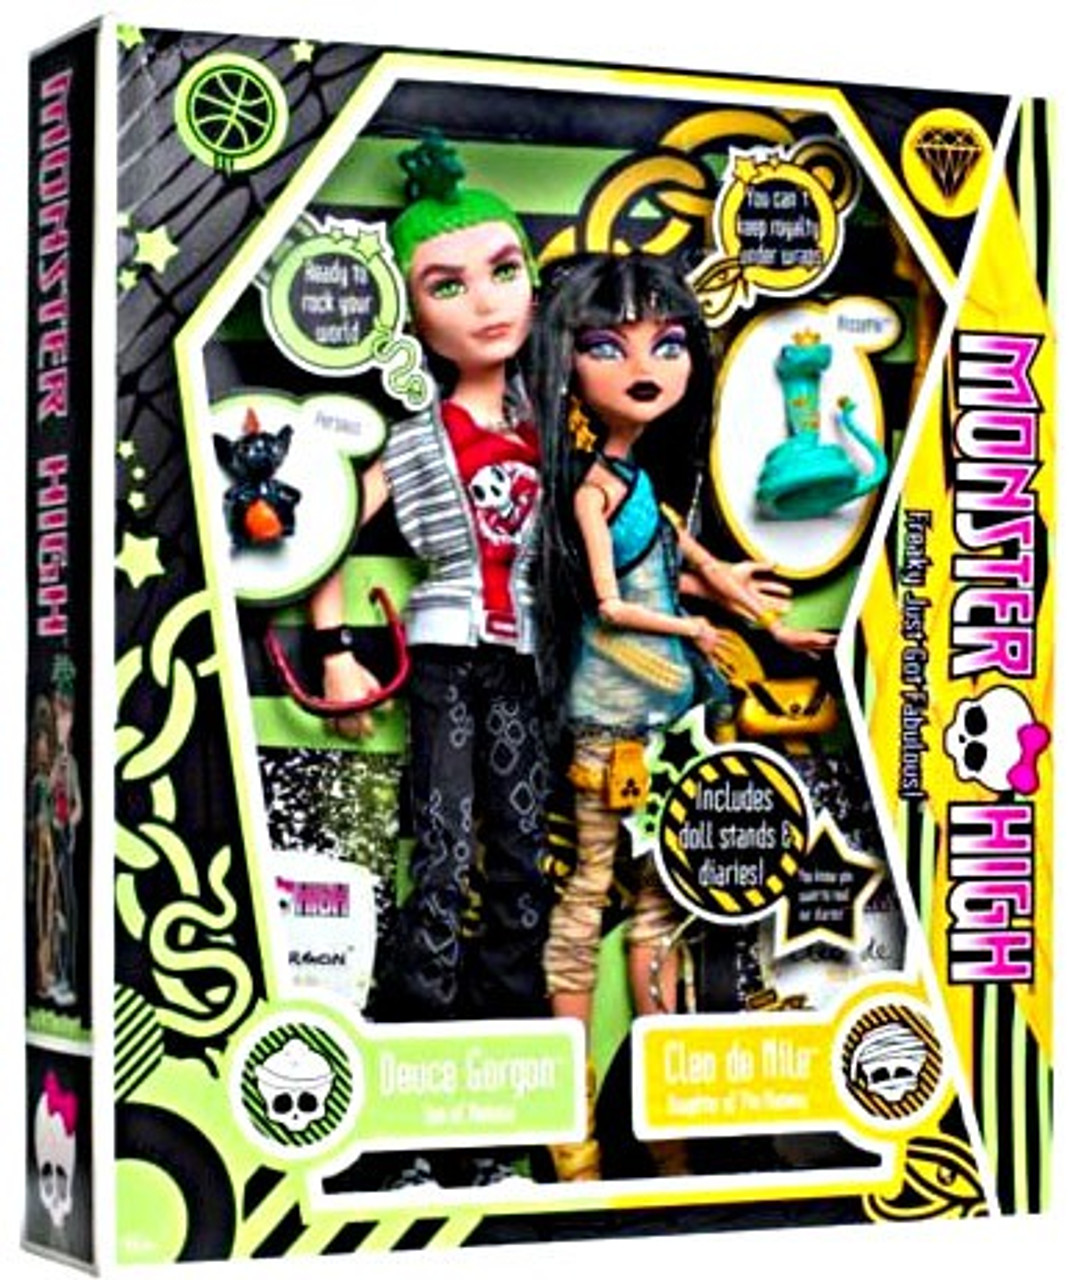 Monster High Deuce Gorgon & Cleo De Nile 10.5-Inch Doll 2-Pack